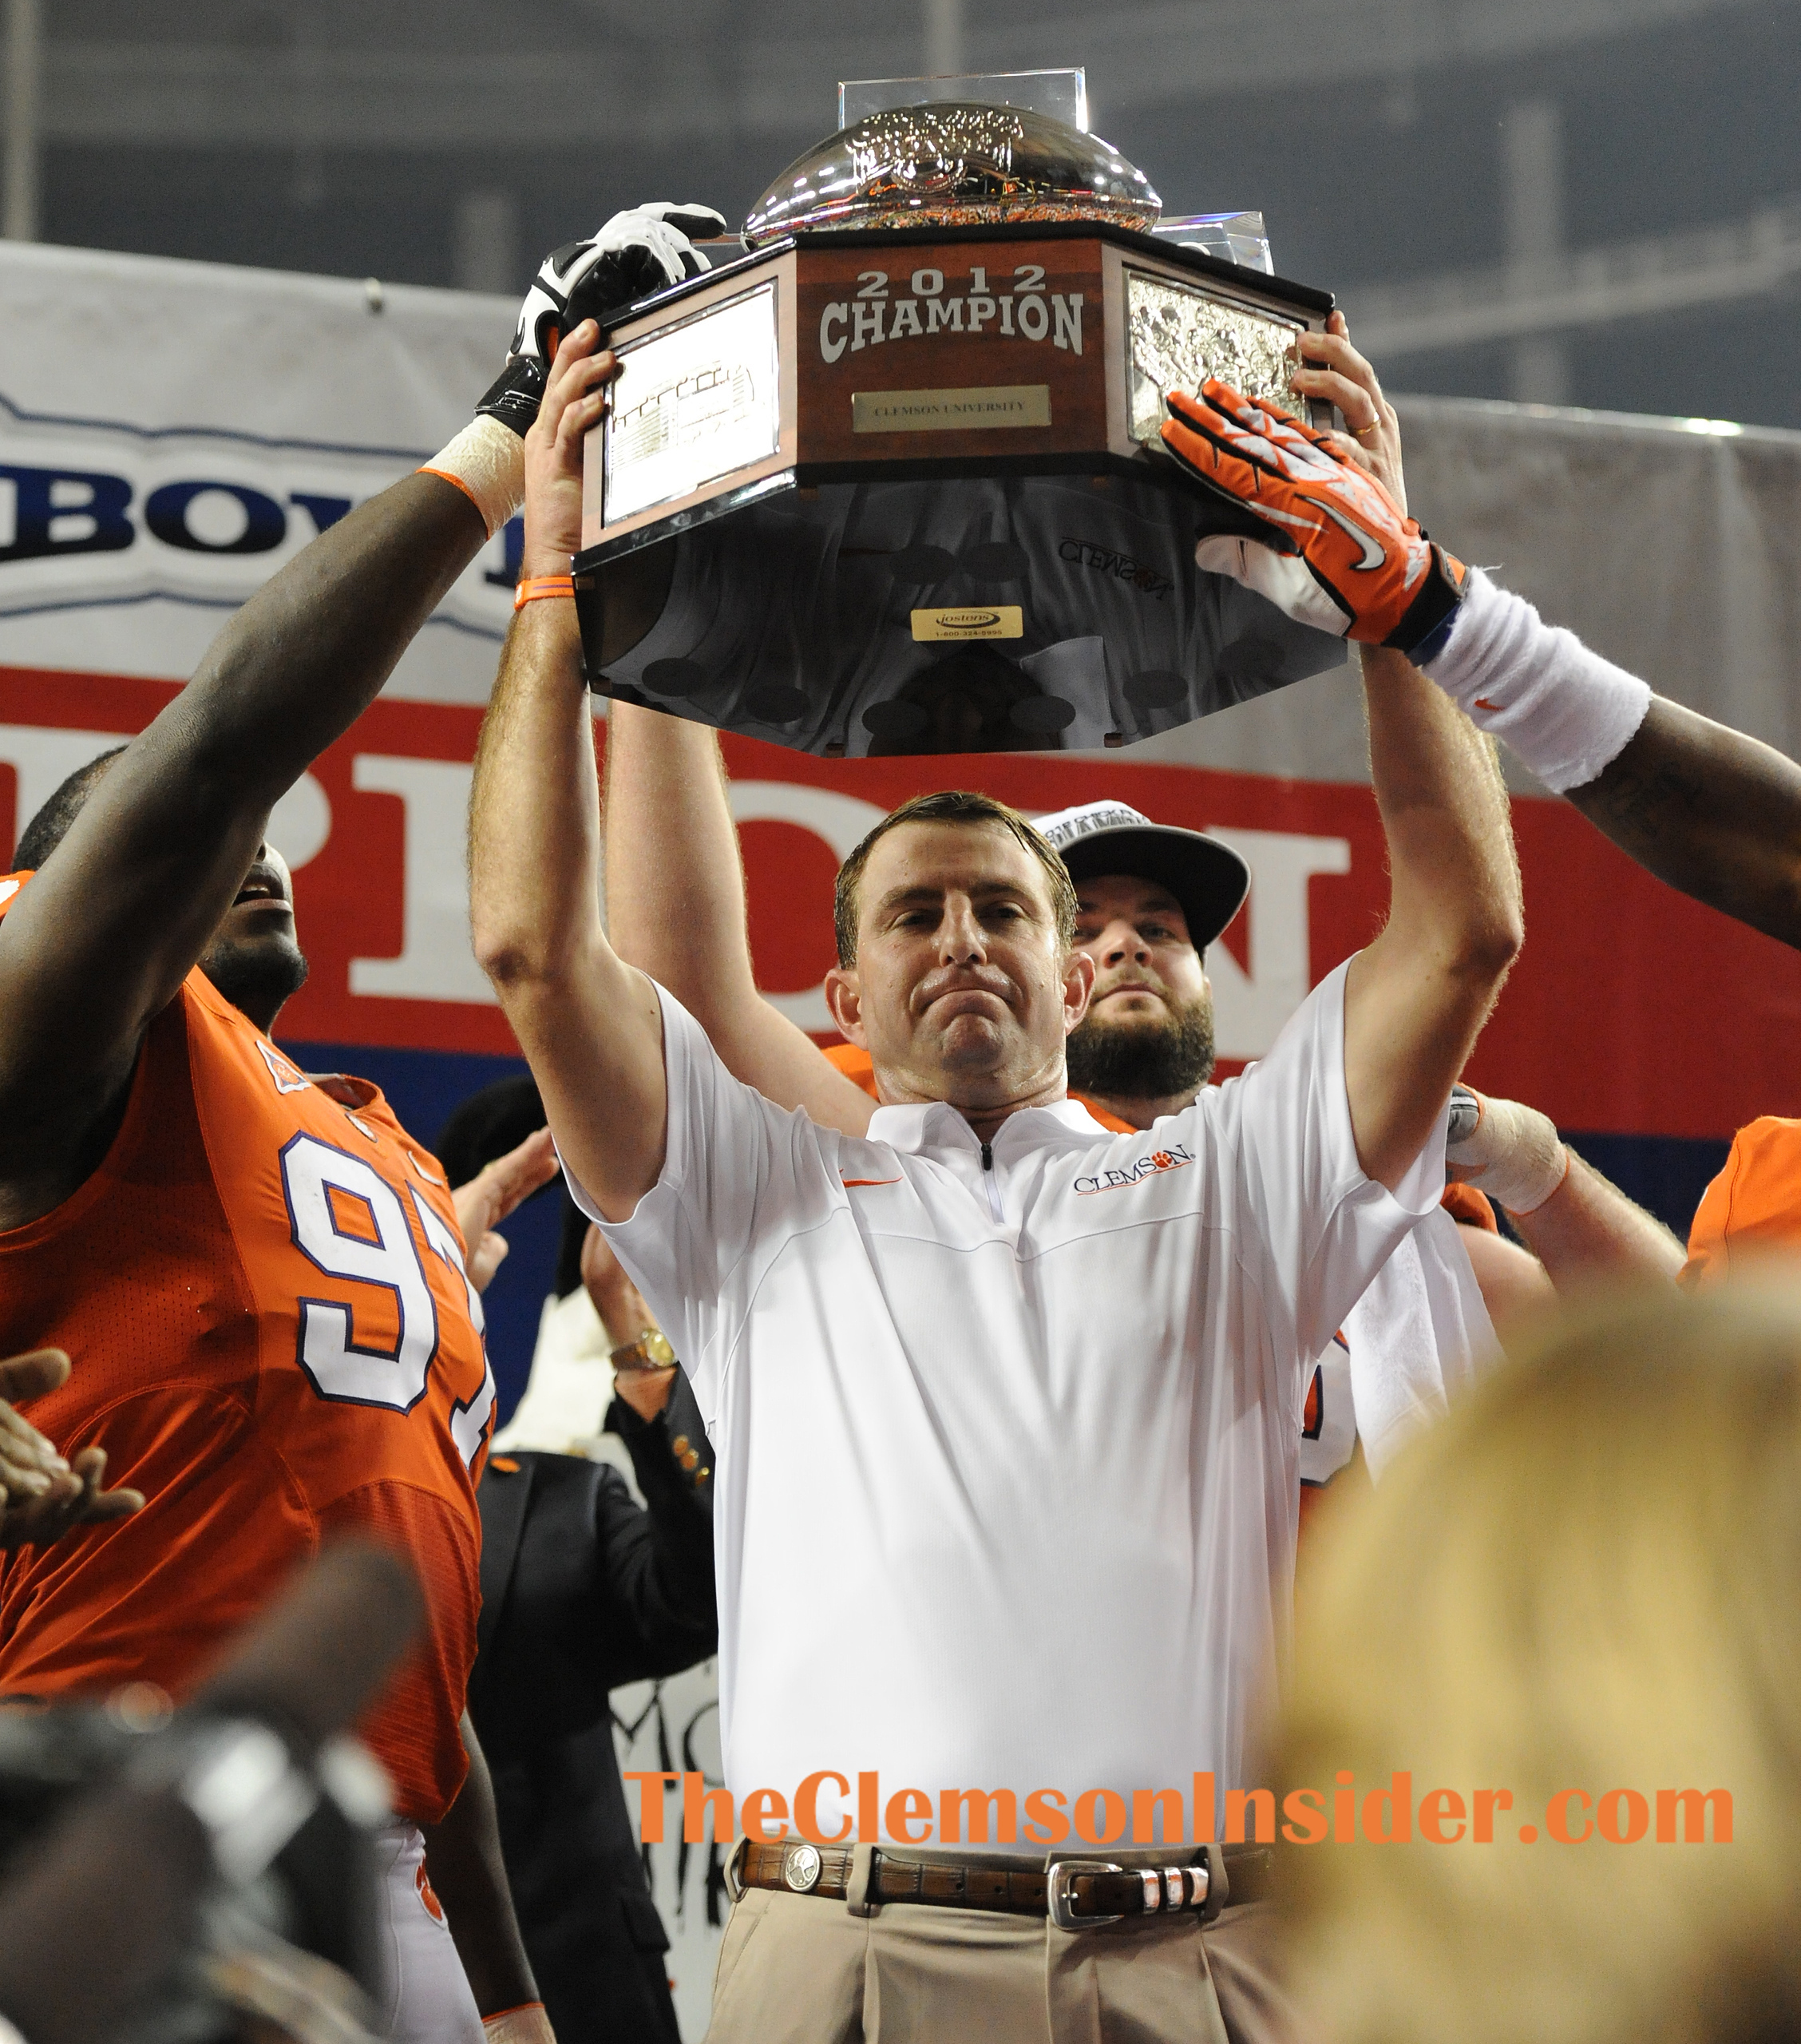 Clemson head coach Dabo Swinney holds the Chick-fil-A Bowl trophy after the Tigers defeated LSU 25-24 Monday, December 31, 2012 in the Georgia Dome in Atlanta. BART BOATWRIGHT/Staff